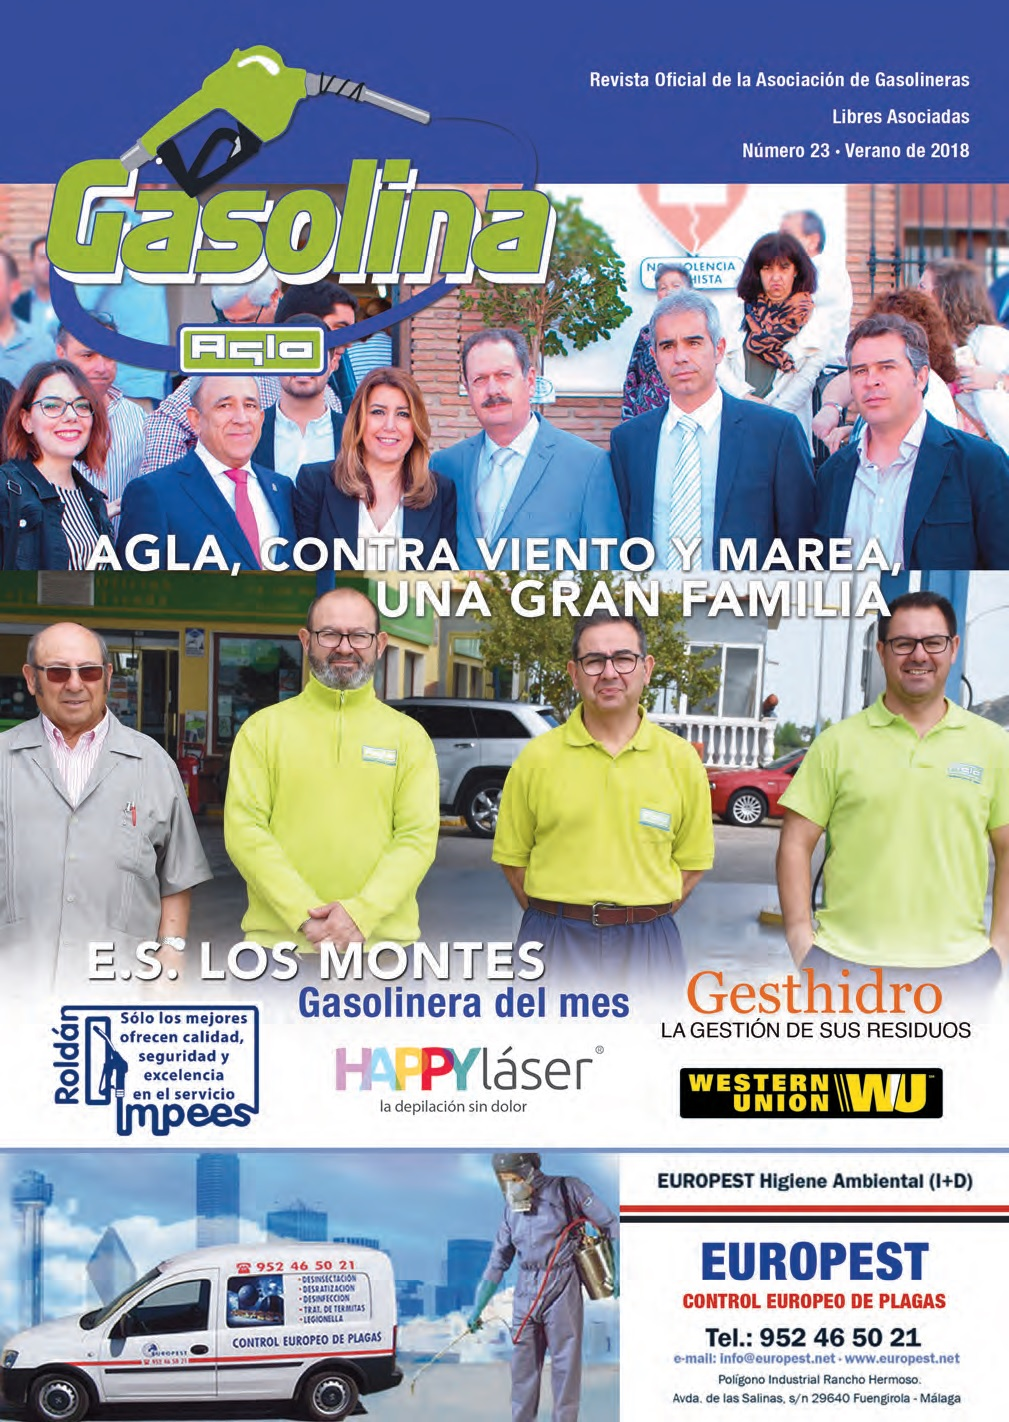 PORTADA REVISTA GASOLINA - JULIO 2018